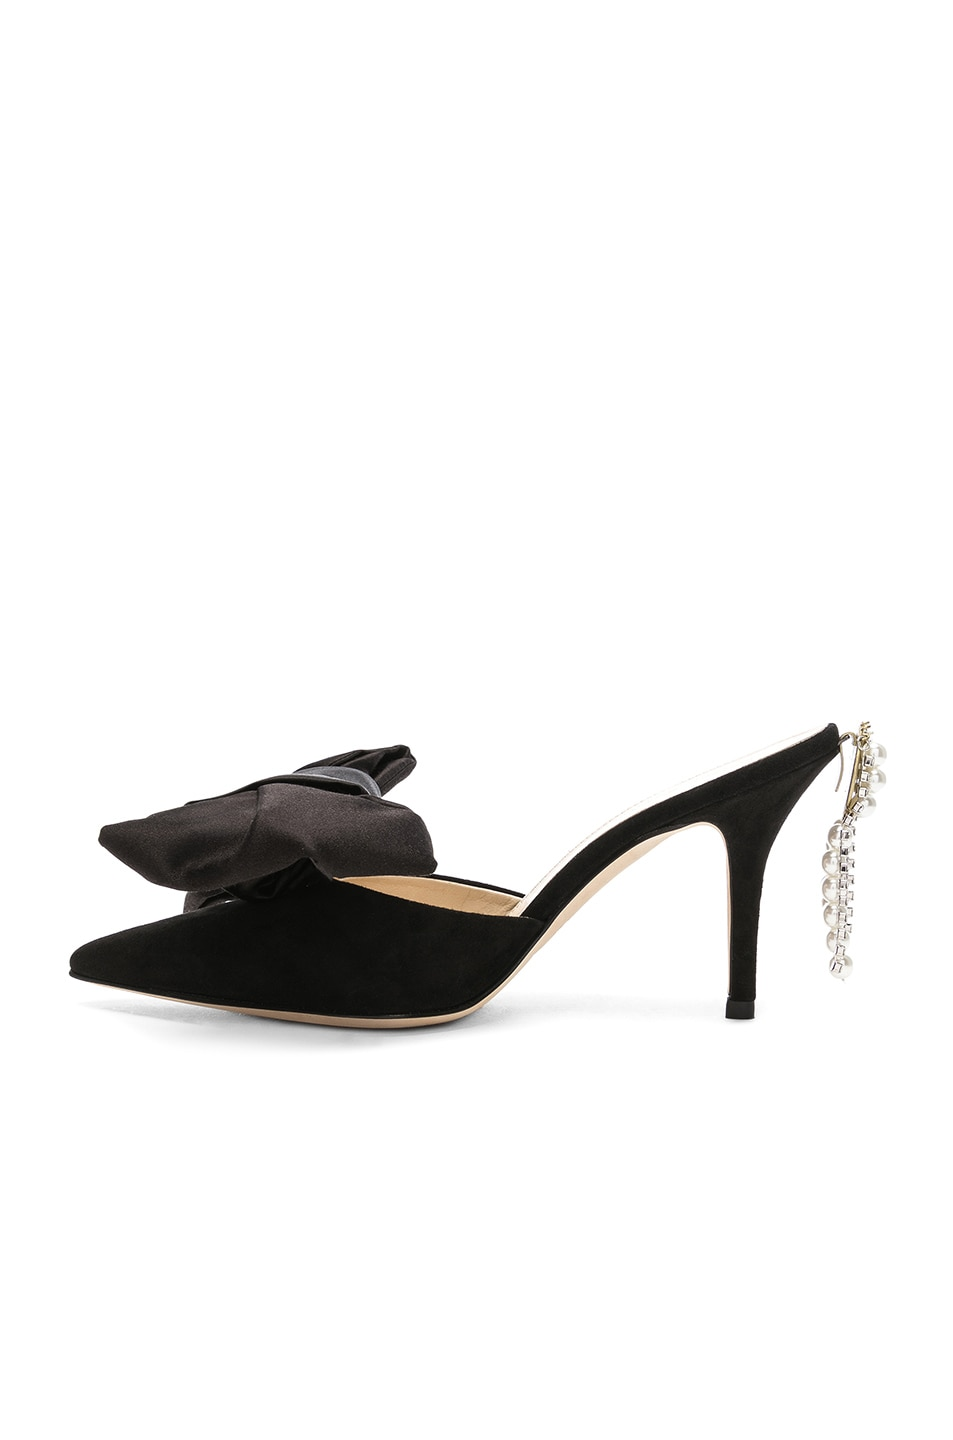 Image 5 of Magda Butrym Suede France Mules in Black